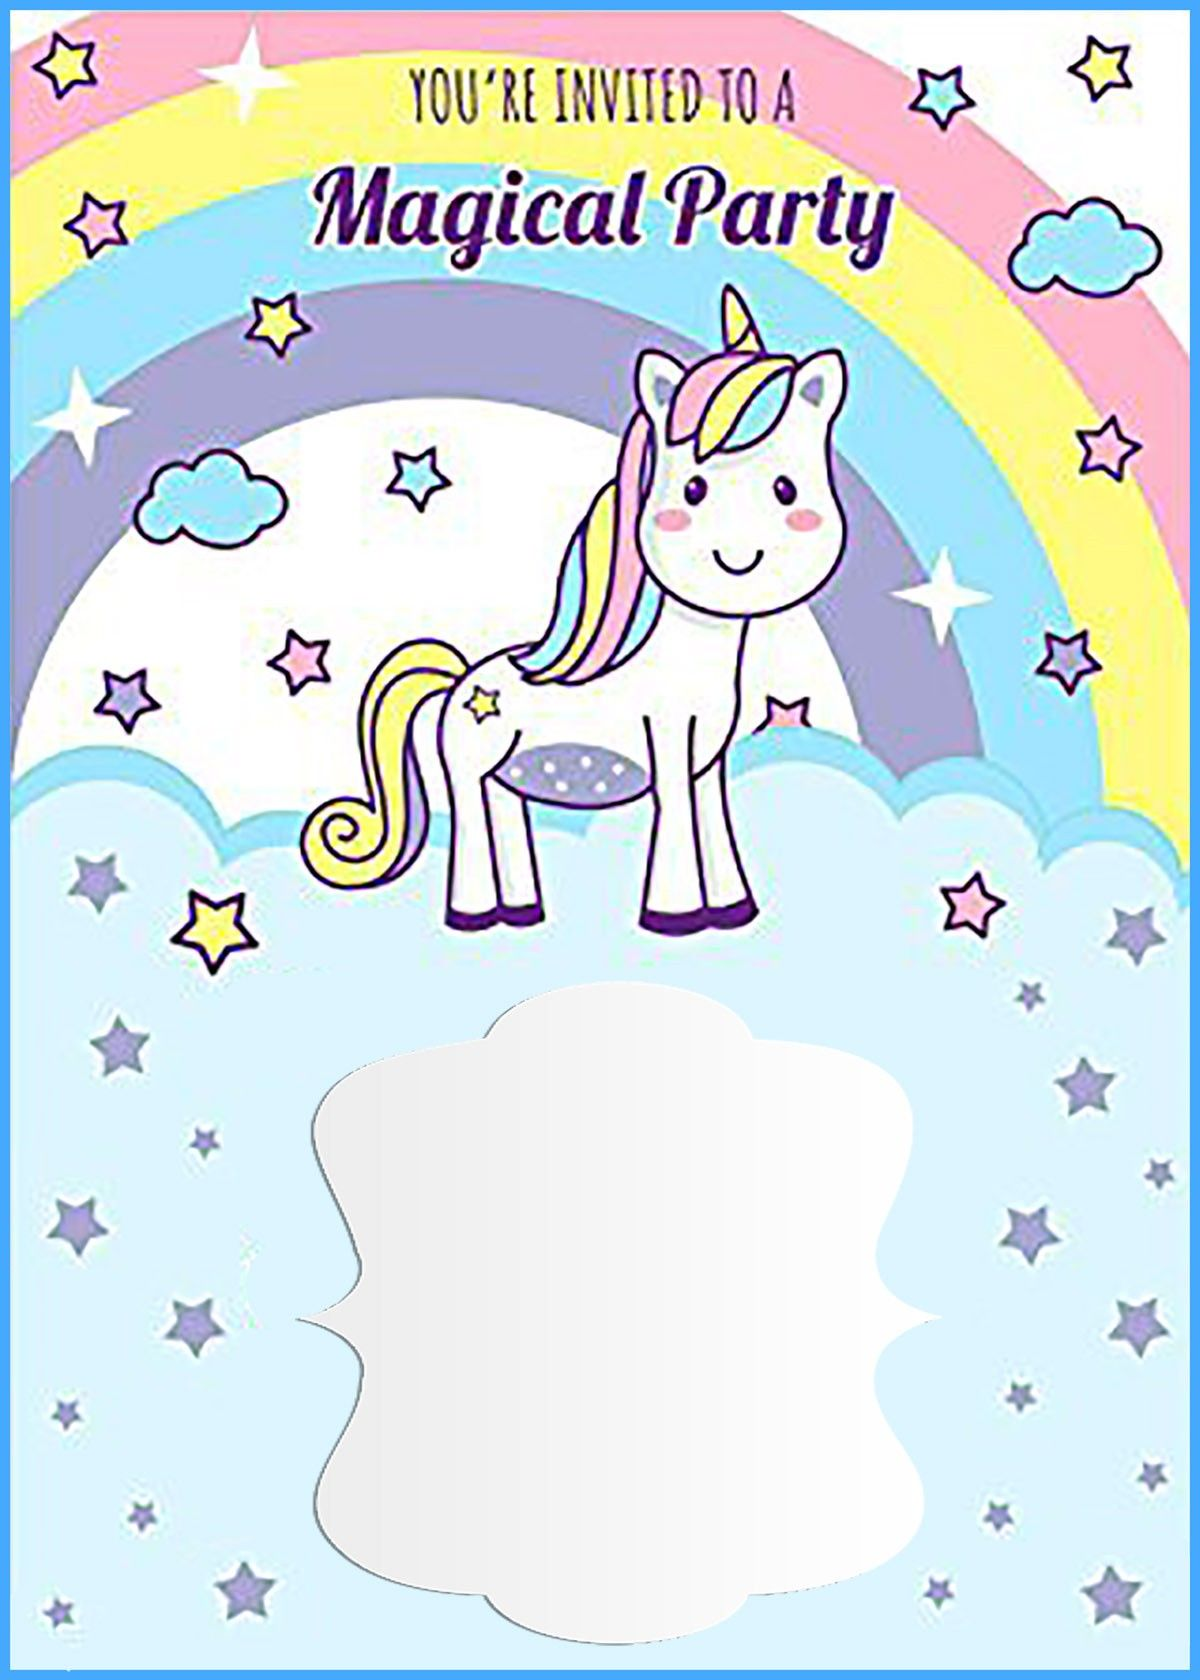 photograph regarding Free Printable Unicorn named Unicorn No cost Printable 1st Birthday Invitation Template